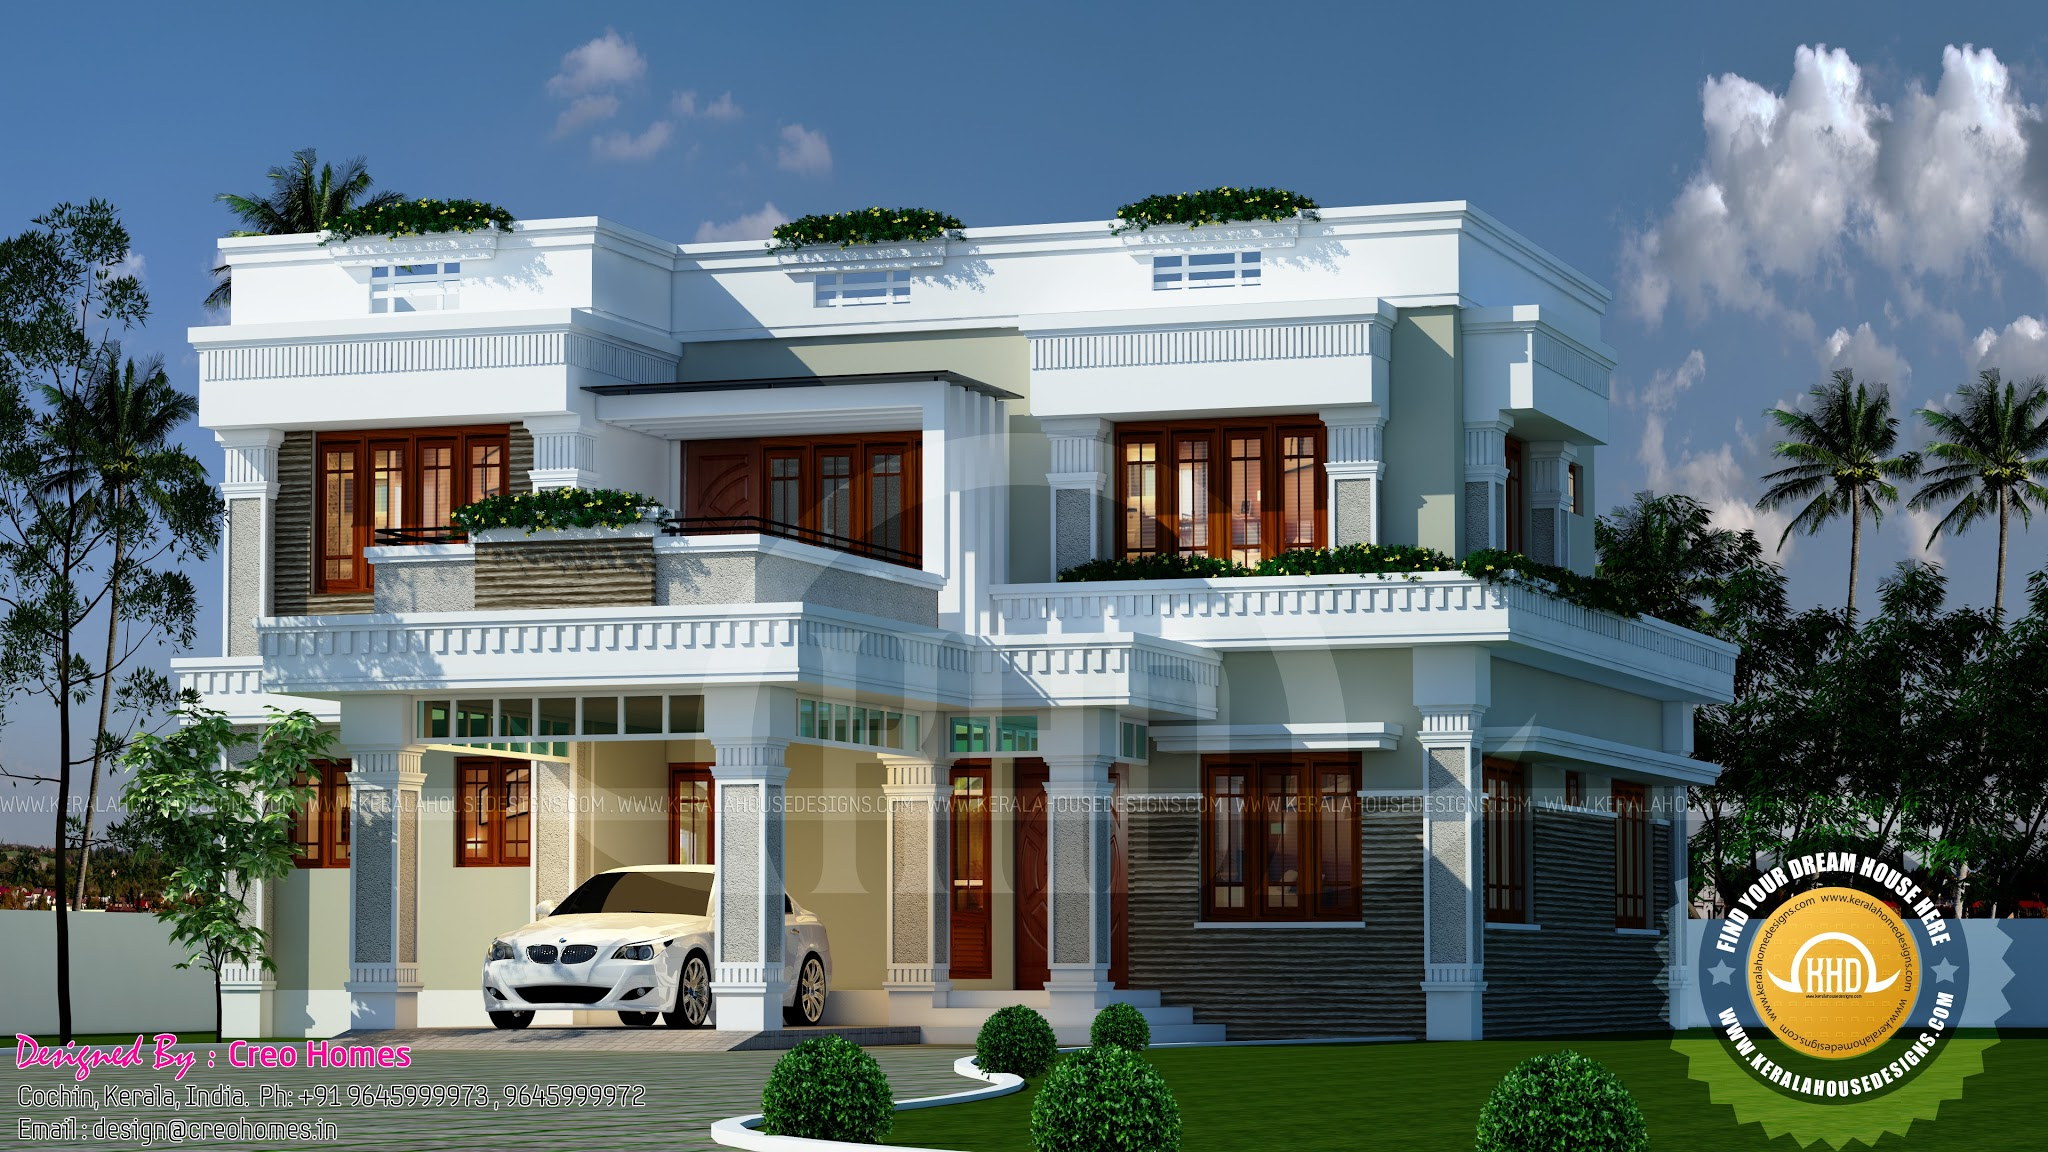 Decorative flat roof home plan kerala home design and for Flat roof home plans